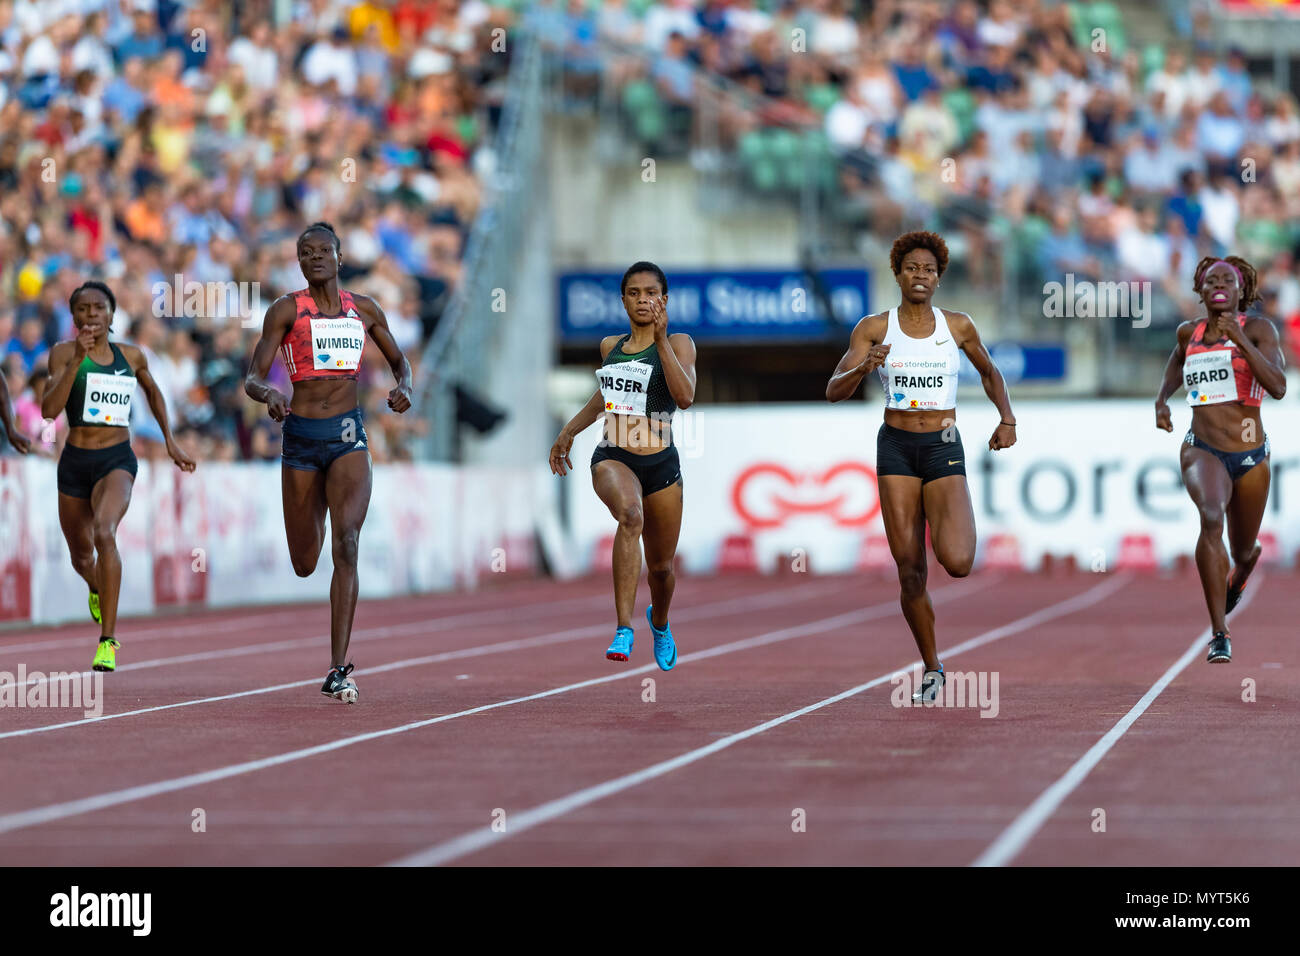 Oslo, Norway. 7th June 2018, Bislett stadium, Oslo, Norway; Bislett Games, Diamond League Athletics meeting; Courtney Okolo of United States, Shakima Wimbley of United States. Salwa Eid Naser of Bahrain, Phyllis Francis of United States, Jessica Beard of United States compete in the ladies 100m during the IAAF Diamond League held at the Bislett Stadium Credit: Action Plus Sports Images/Alamy Live News - Stock Image